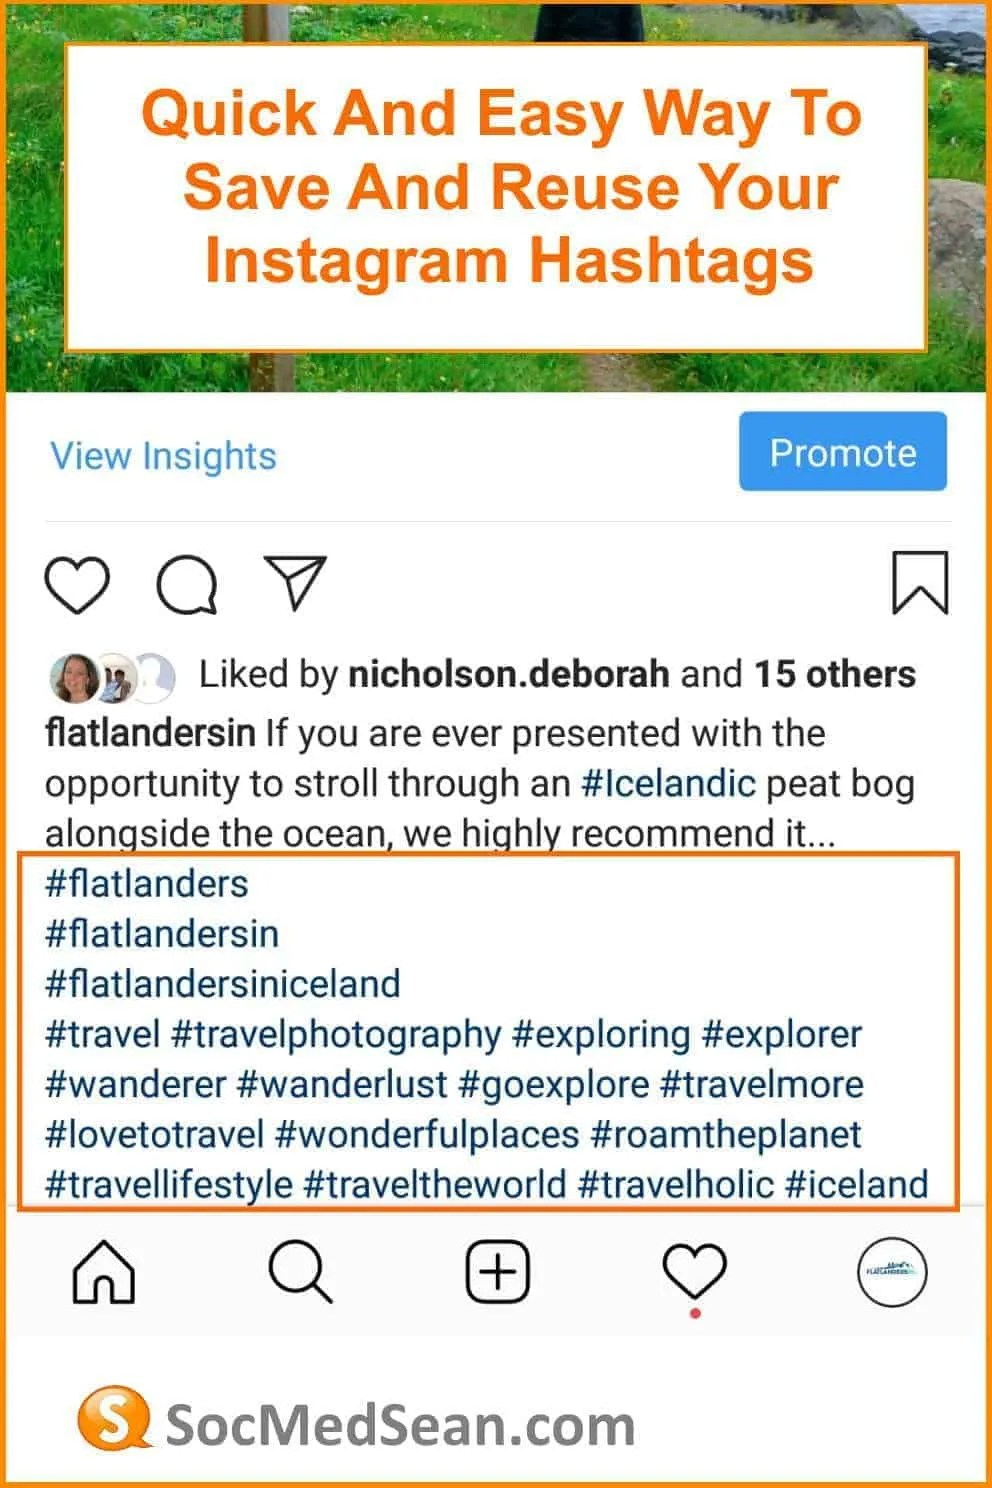 Quick tips for saving and reusing your Instagram hashtags